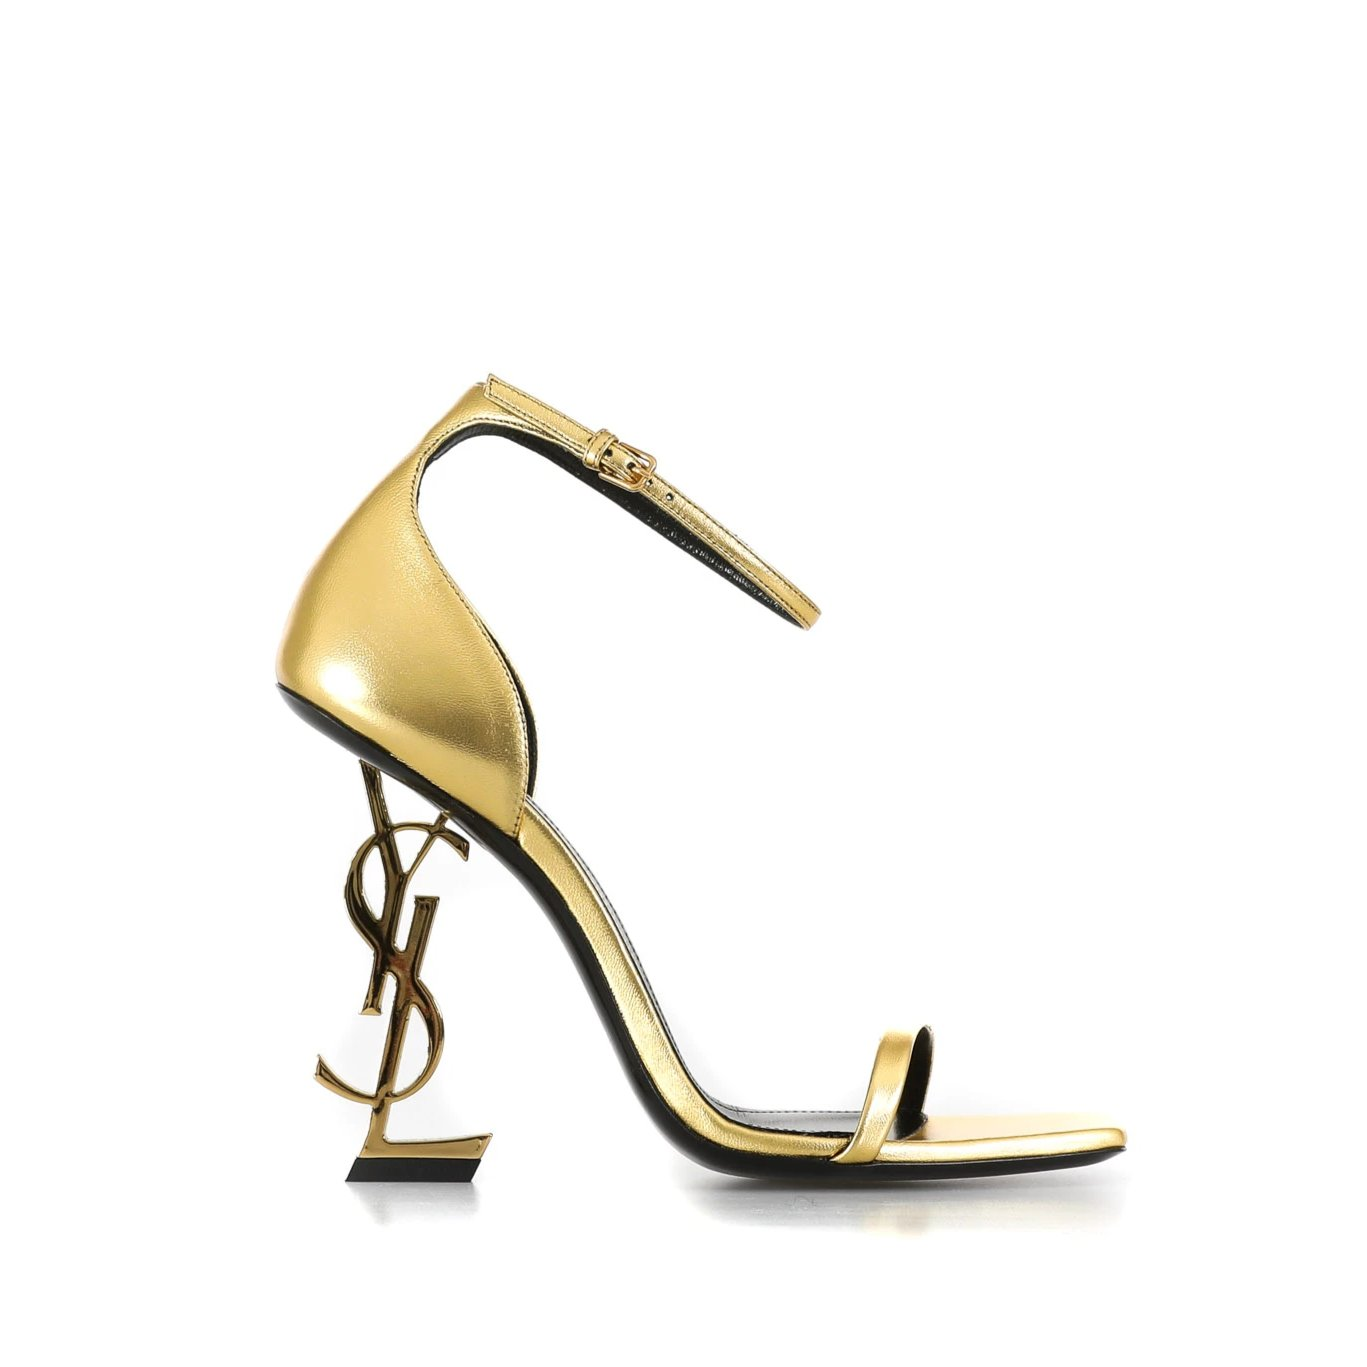 Yves Saint Laurent Opyum Sandals